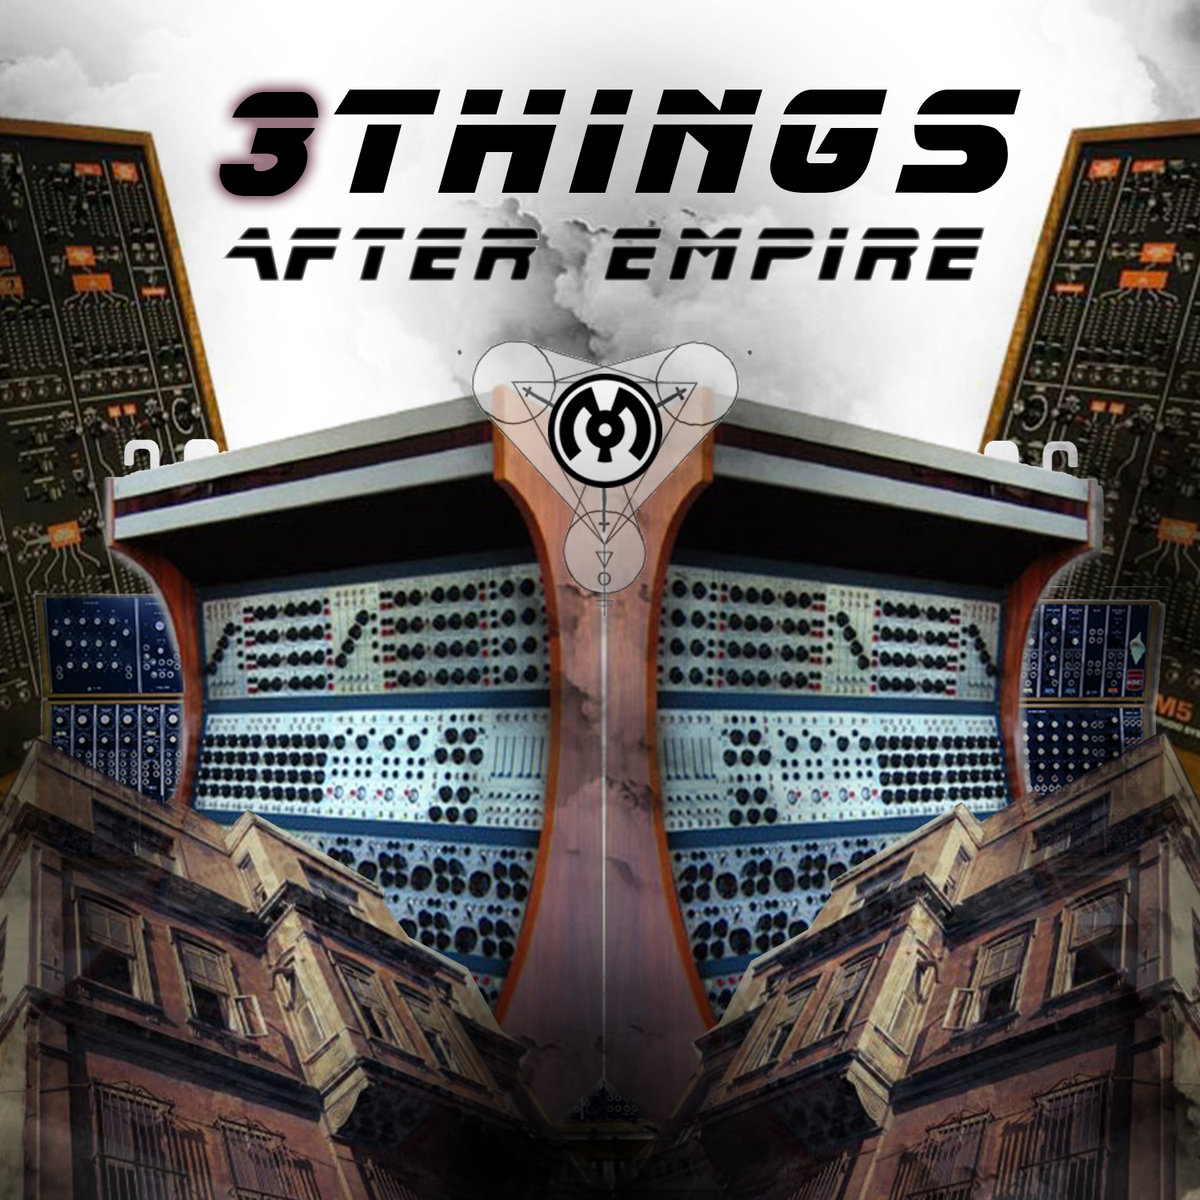 After Empire - tURN UP @ '3 Things' album (electronic, trap)